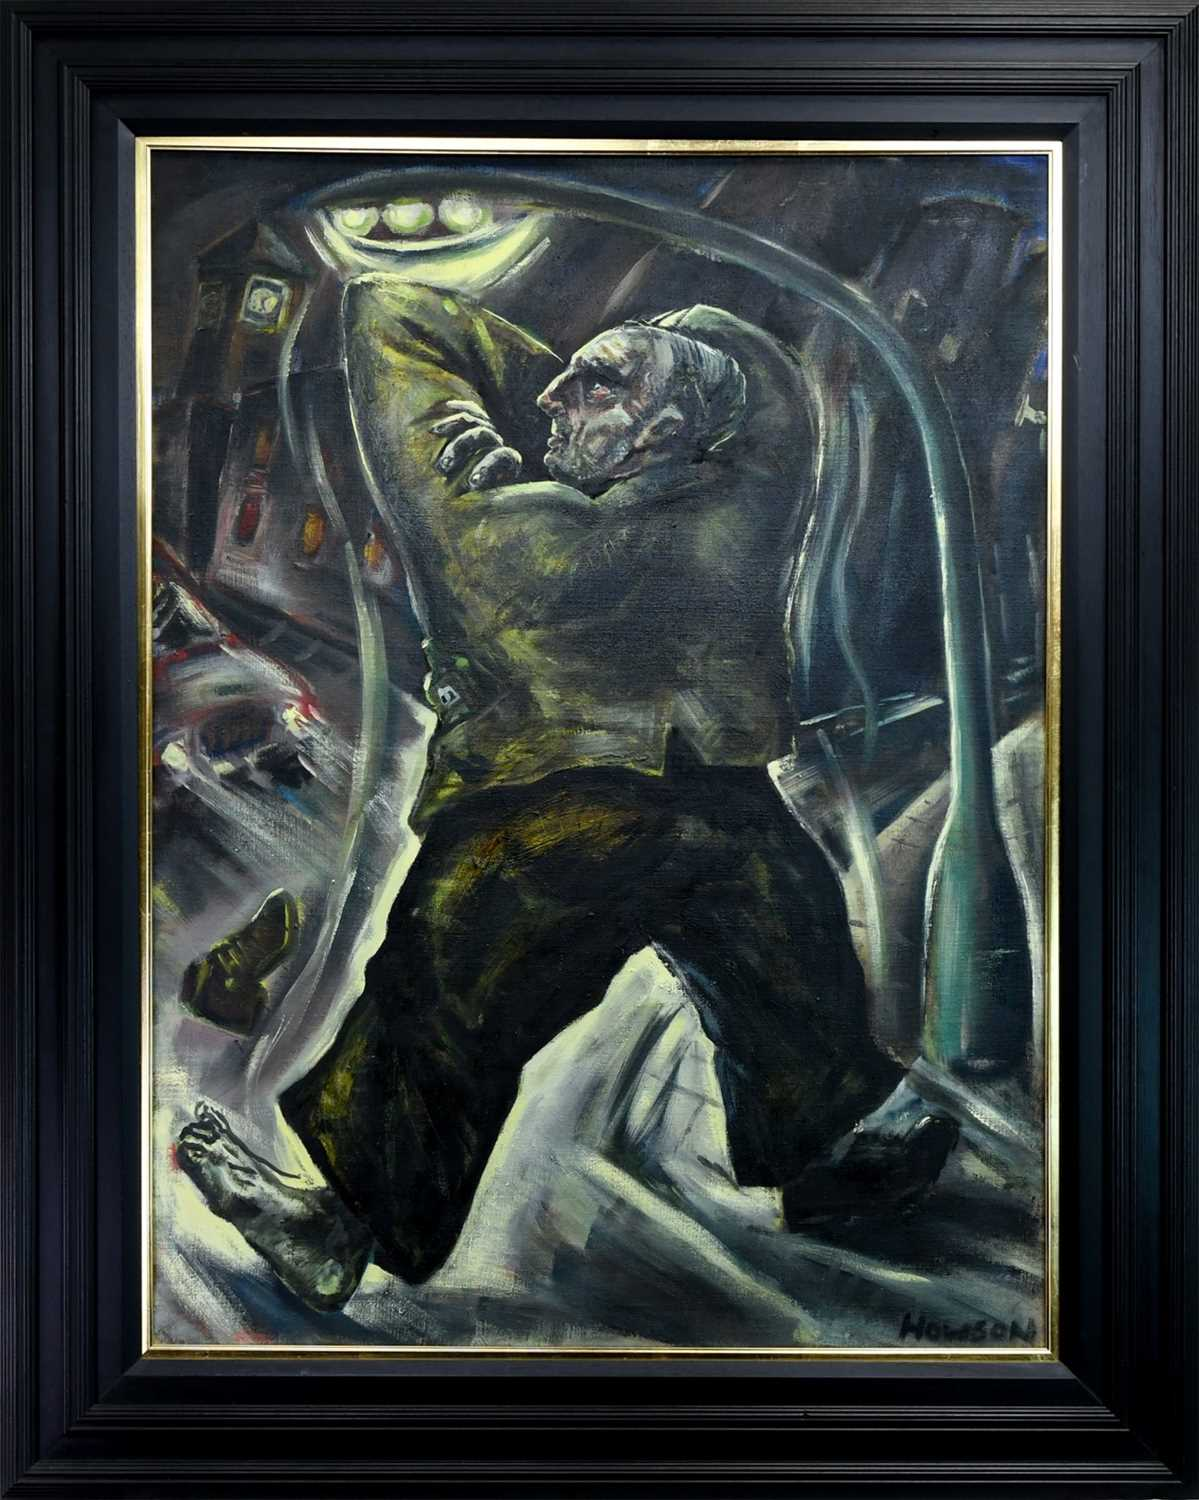 Lot 109 - MORAUCOULOUS, AN OIL BY PETER HOWSON